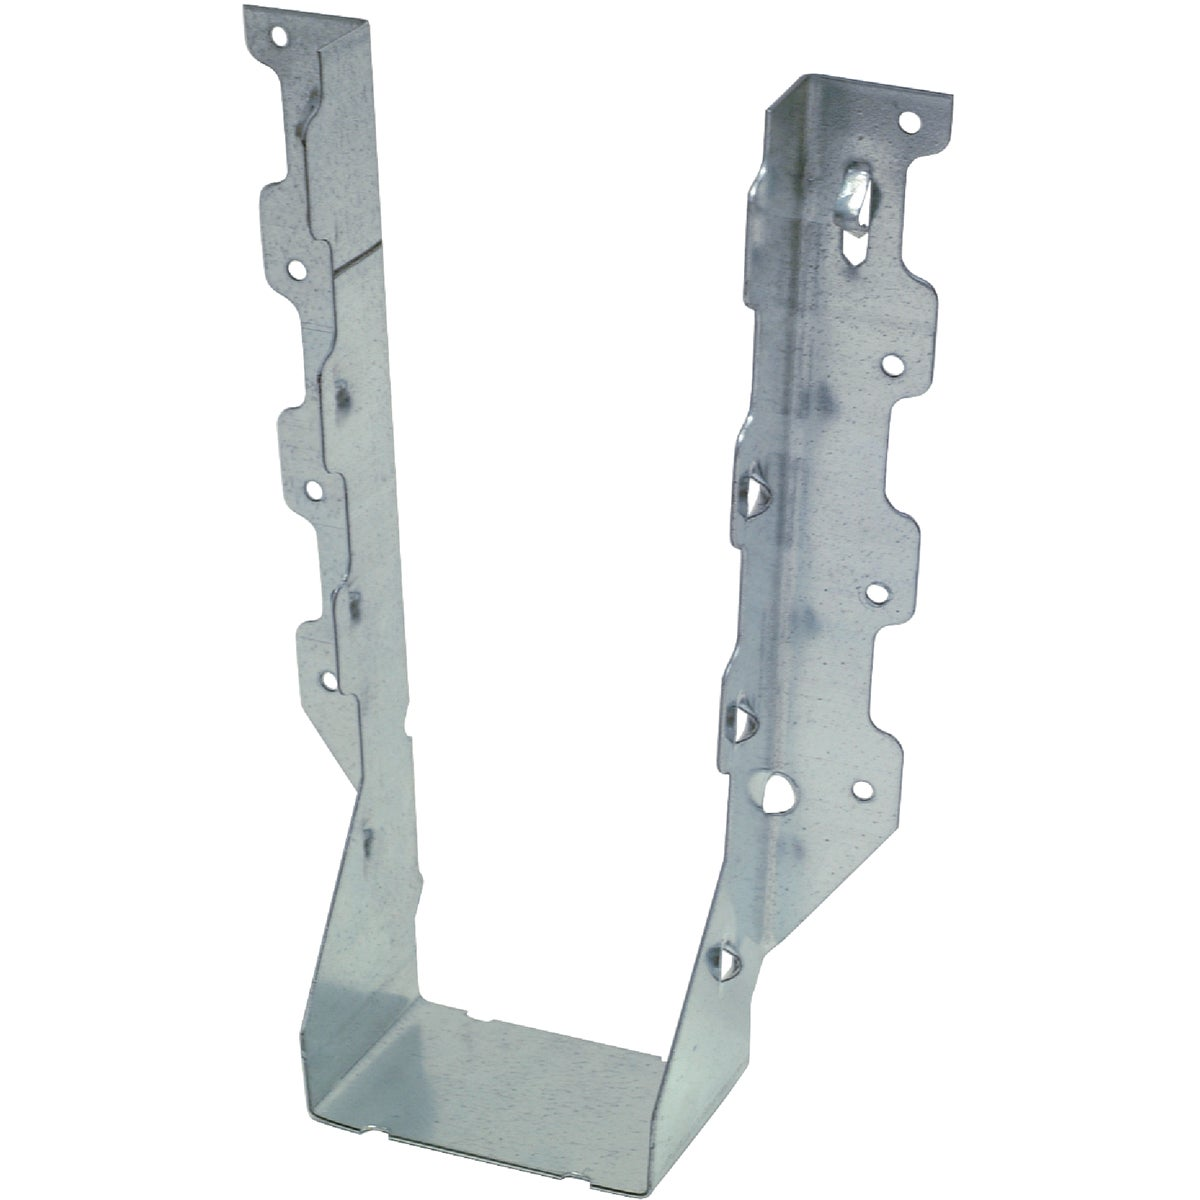 2X10 DOUBLE JOIST HANGER - LUS210-2 by Simpson Strong Tie